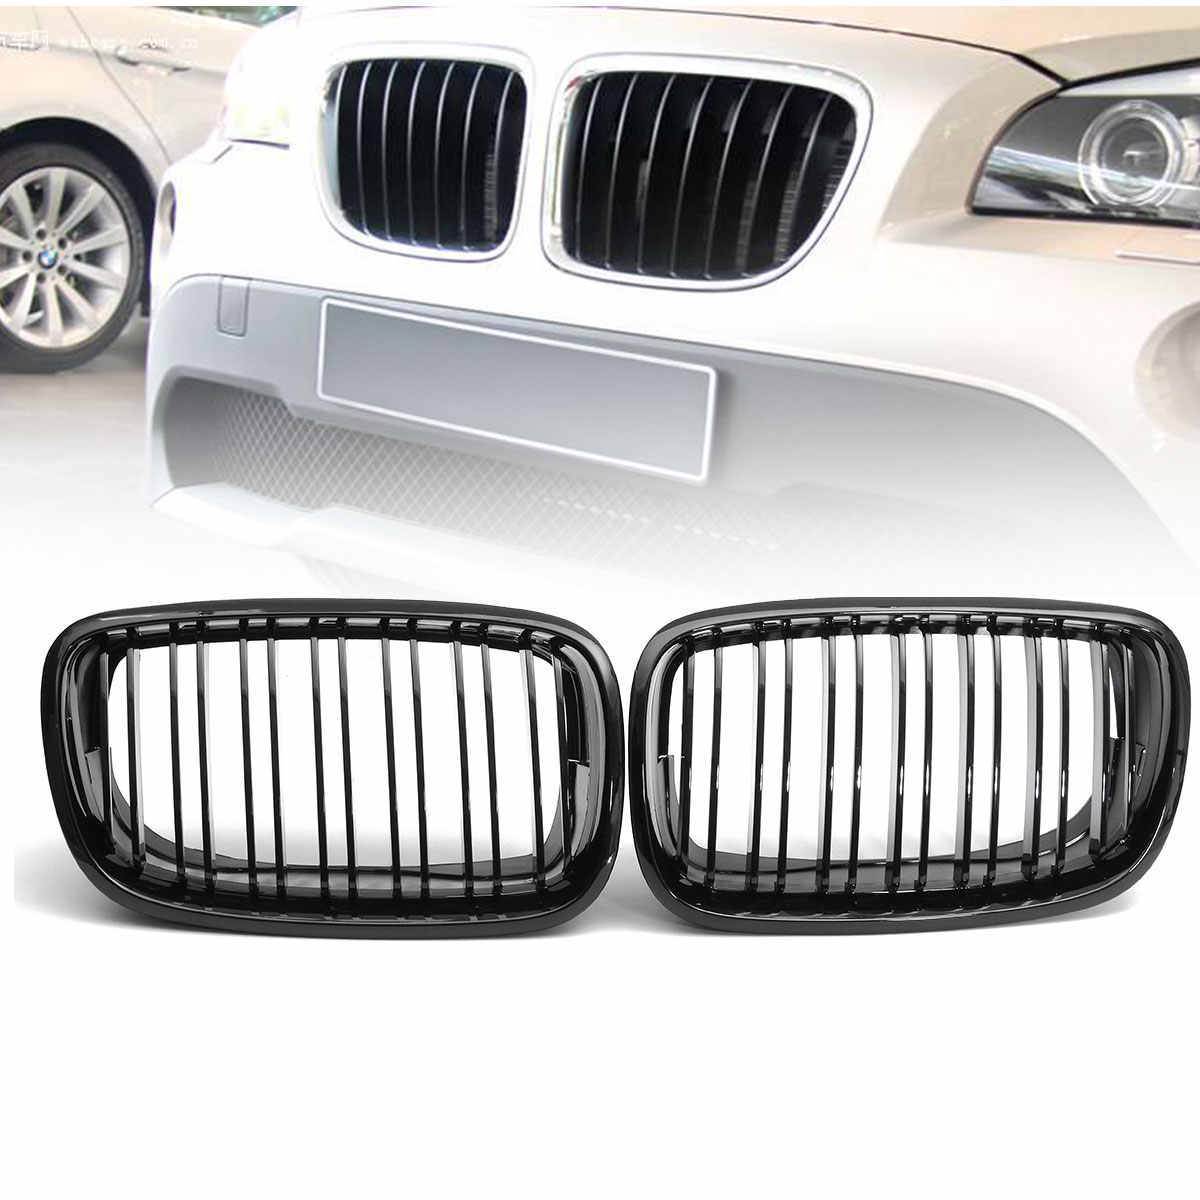 SHENGYAWAUTO ABS Front Hood Sport Bumper Kidney Grille Pair For BMW E70 X5 E71 X6 2007-2013